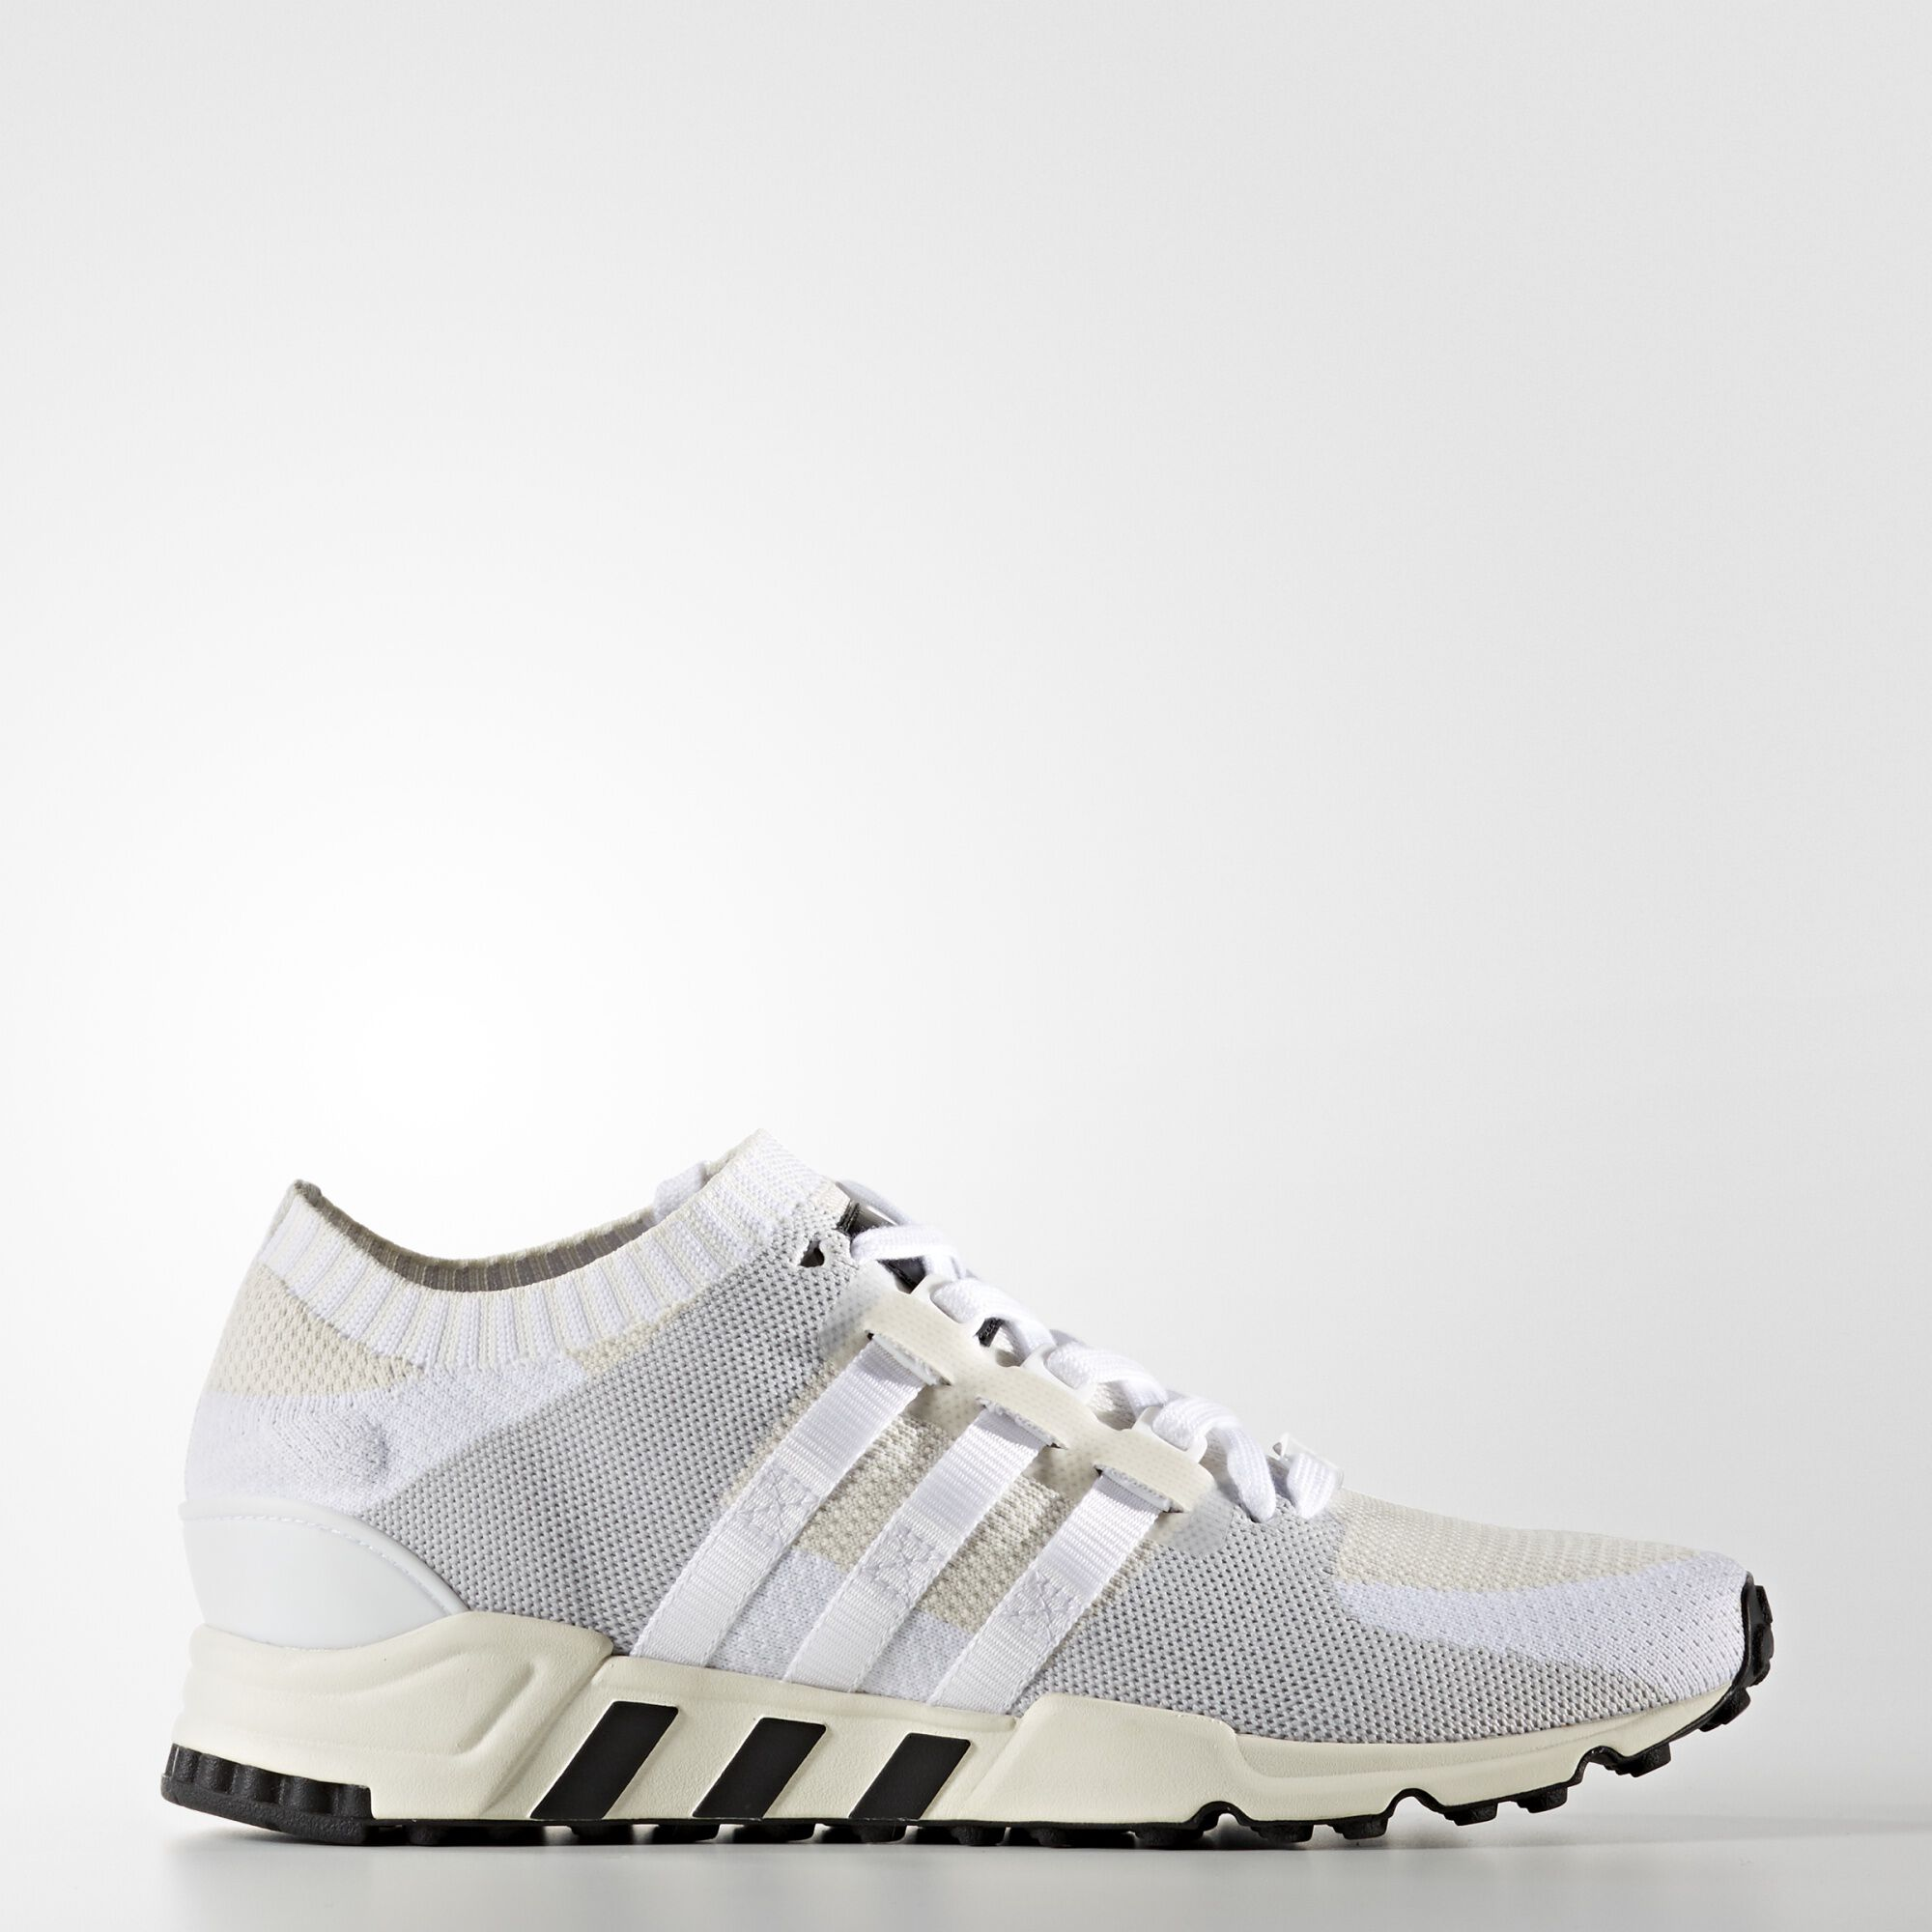 Adidas Originals EQT Support RF White/Black/Sal BA7715 Culture